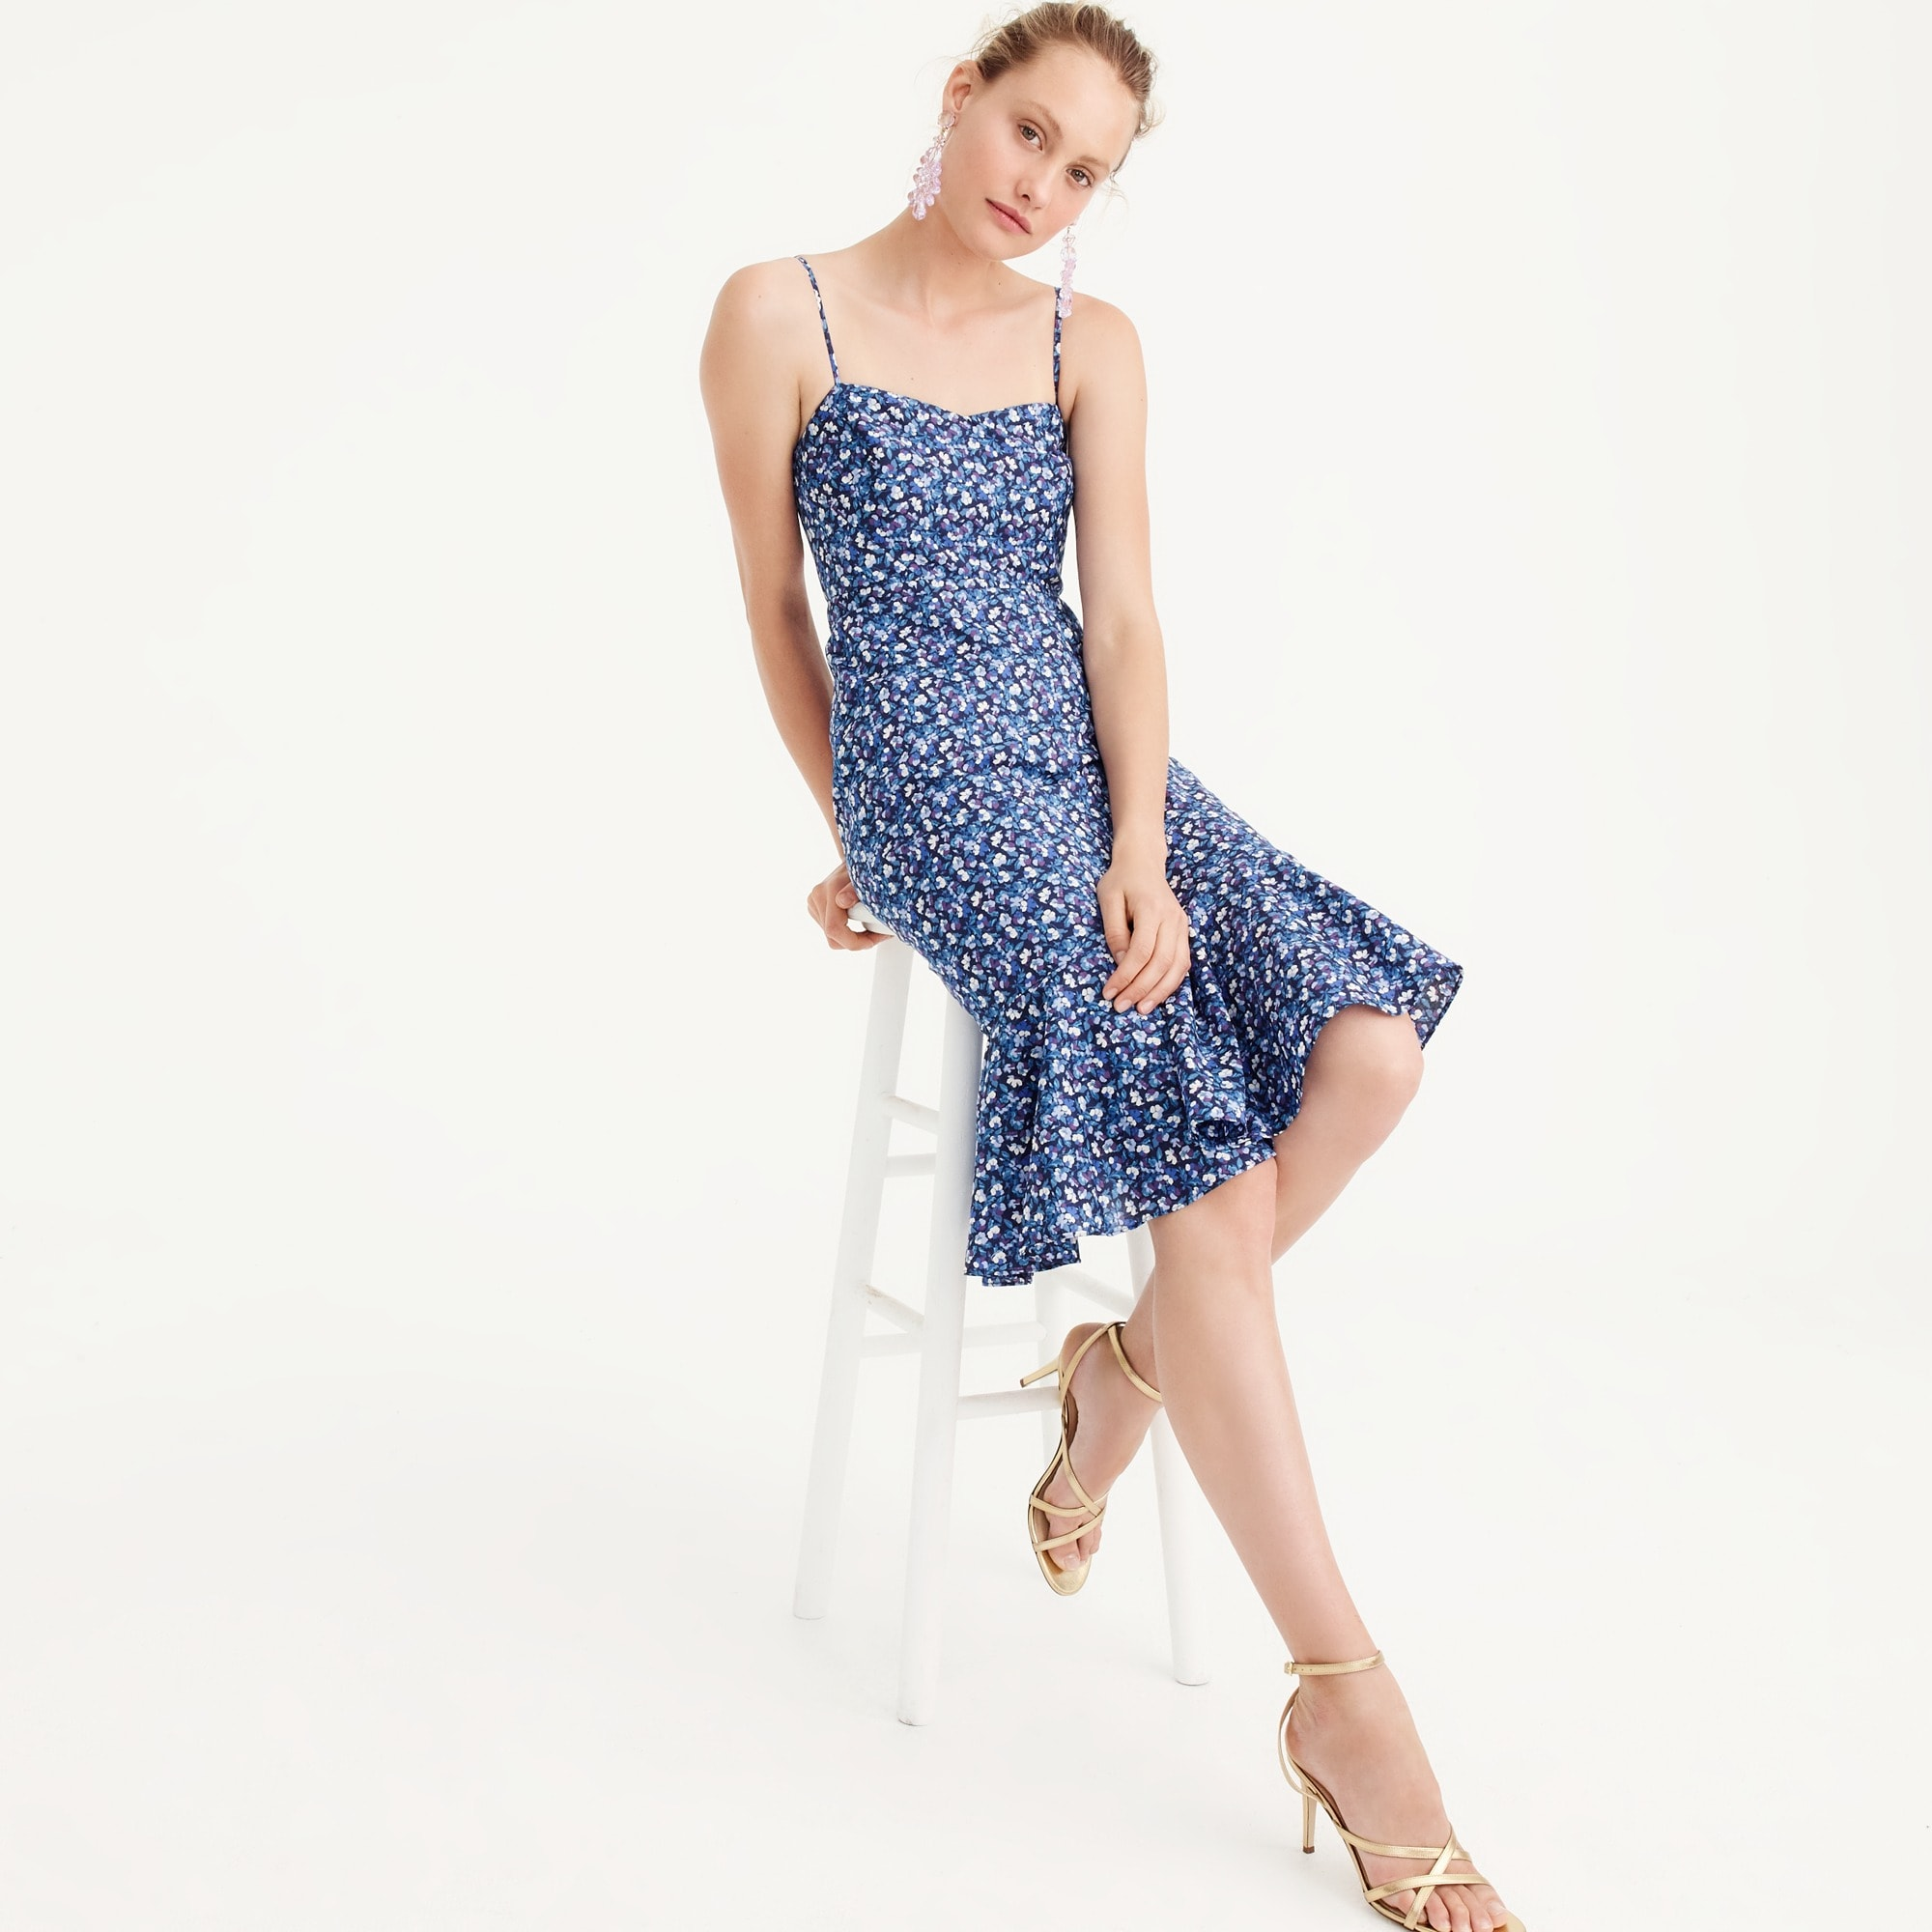 Ruffle-hem midi dress in Liberty® Sarah floral